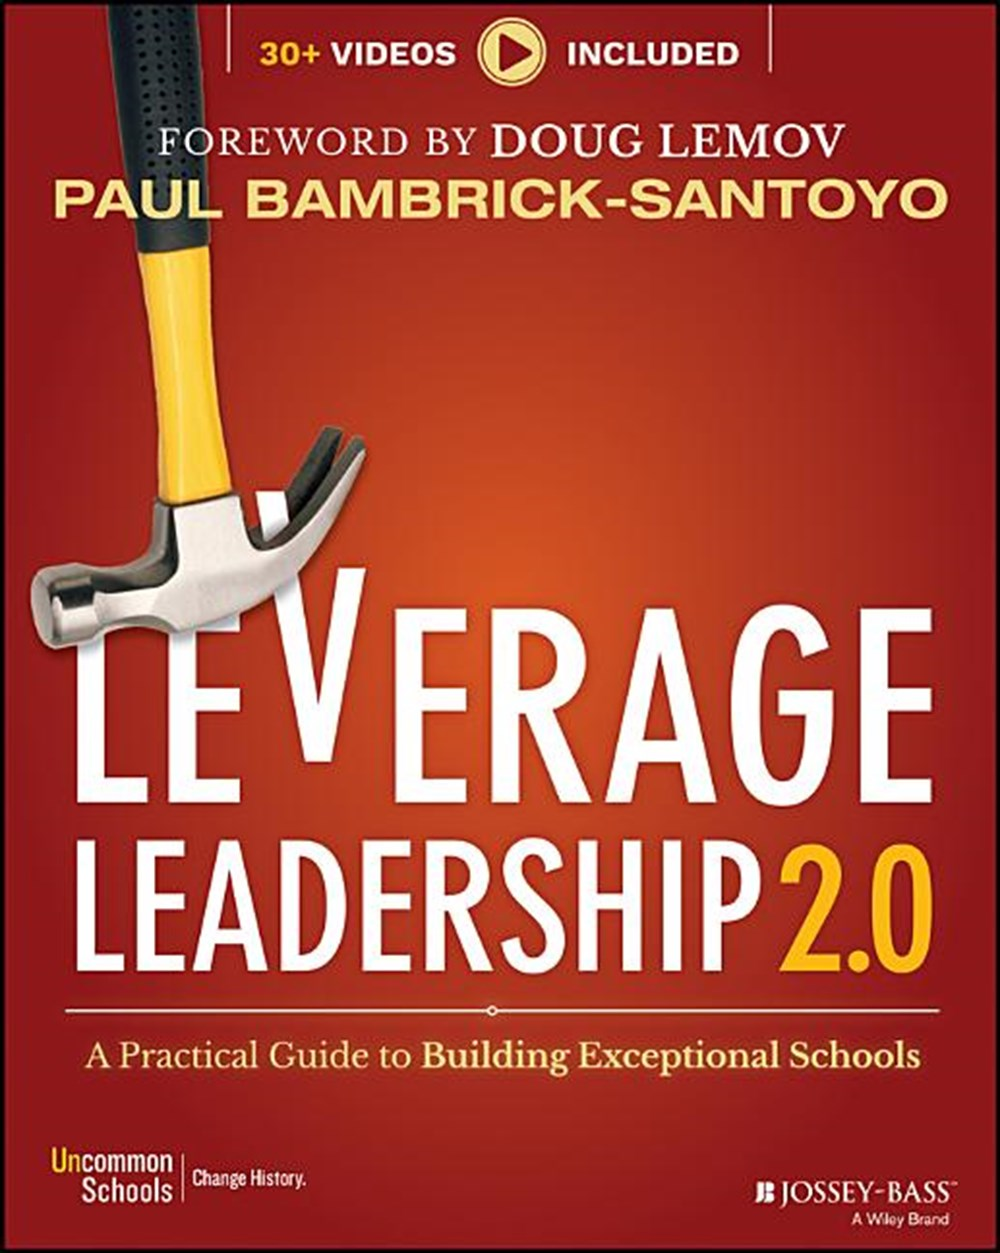 Leverage Leadership 2.0 A Practical Guide to Building Exceptional Schools